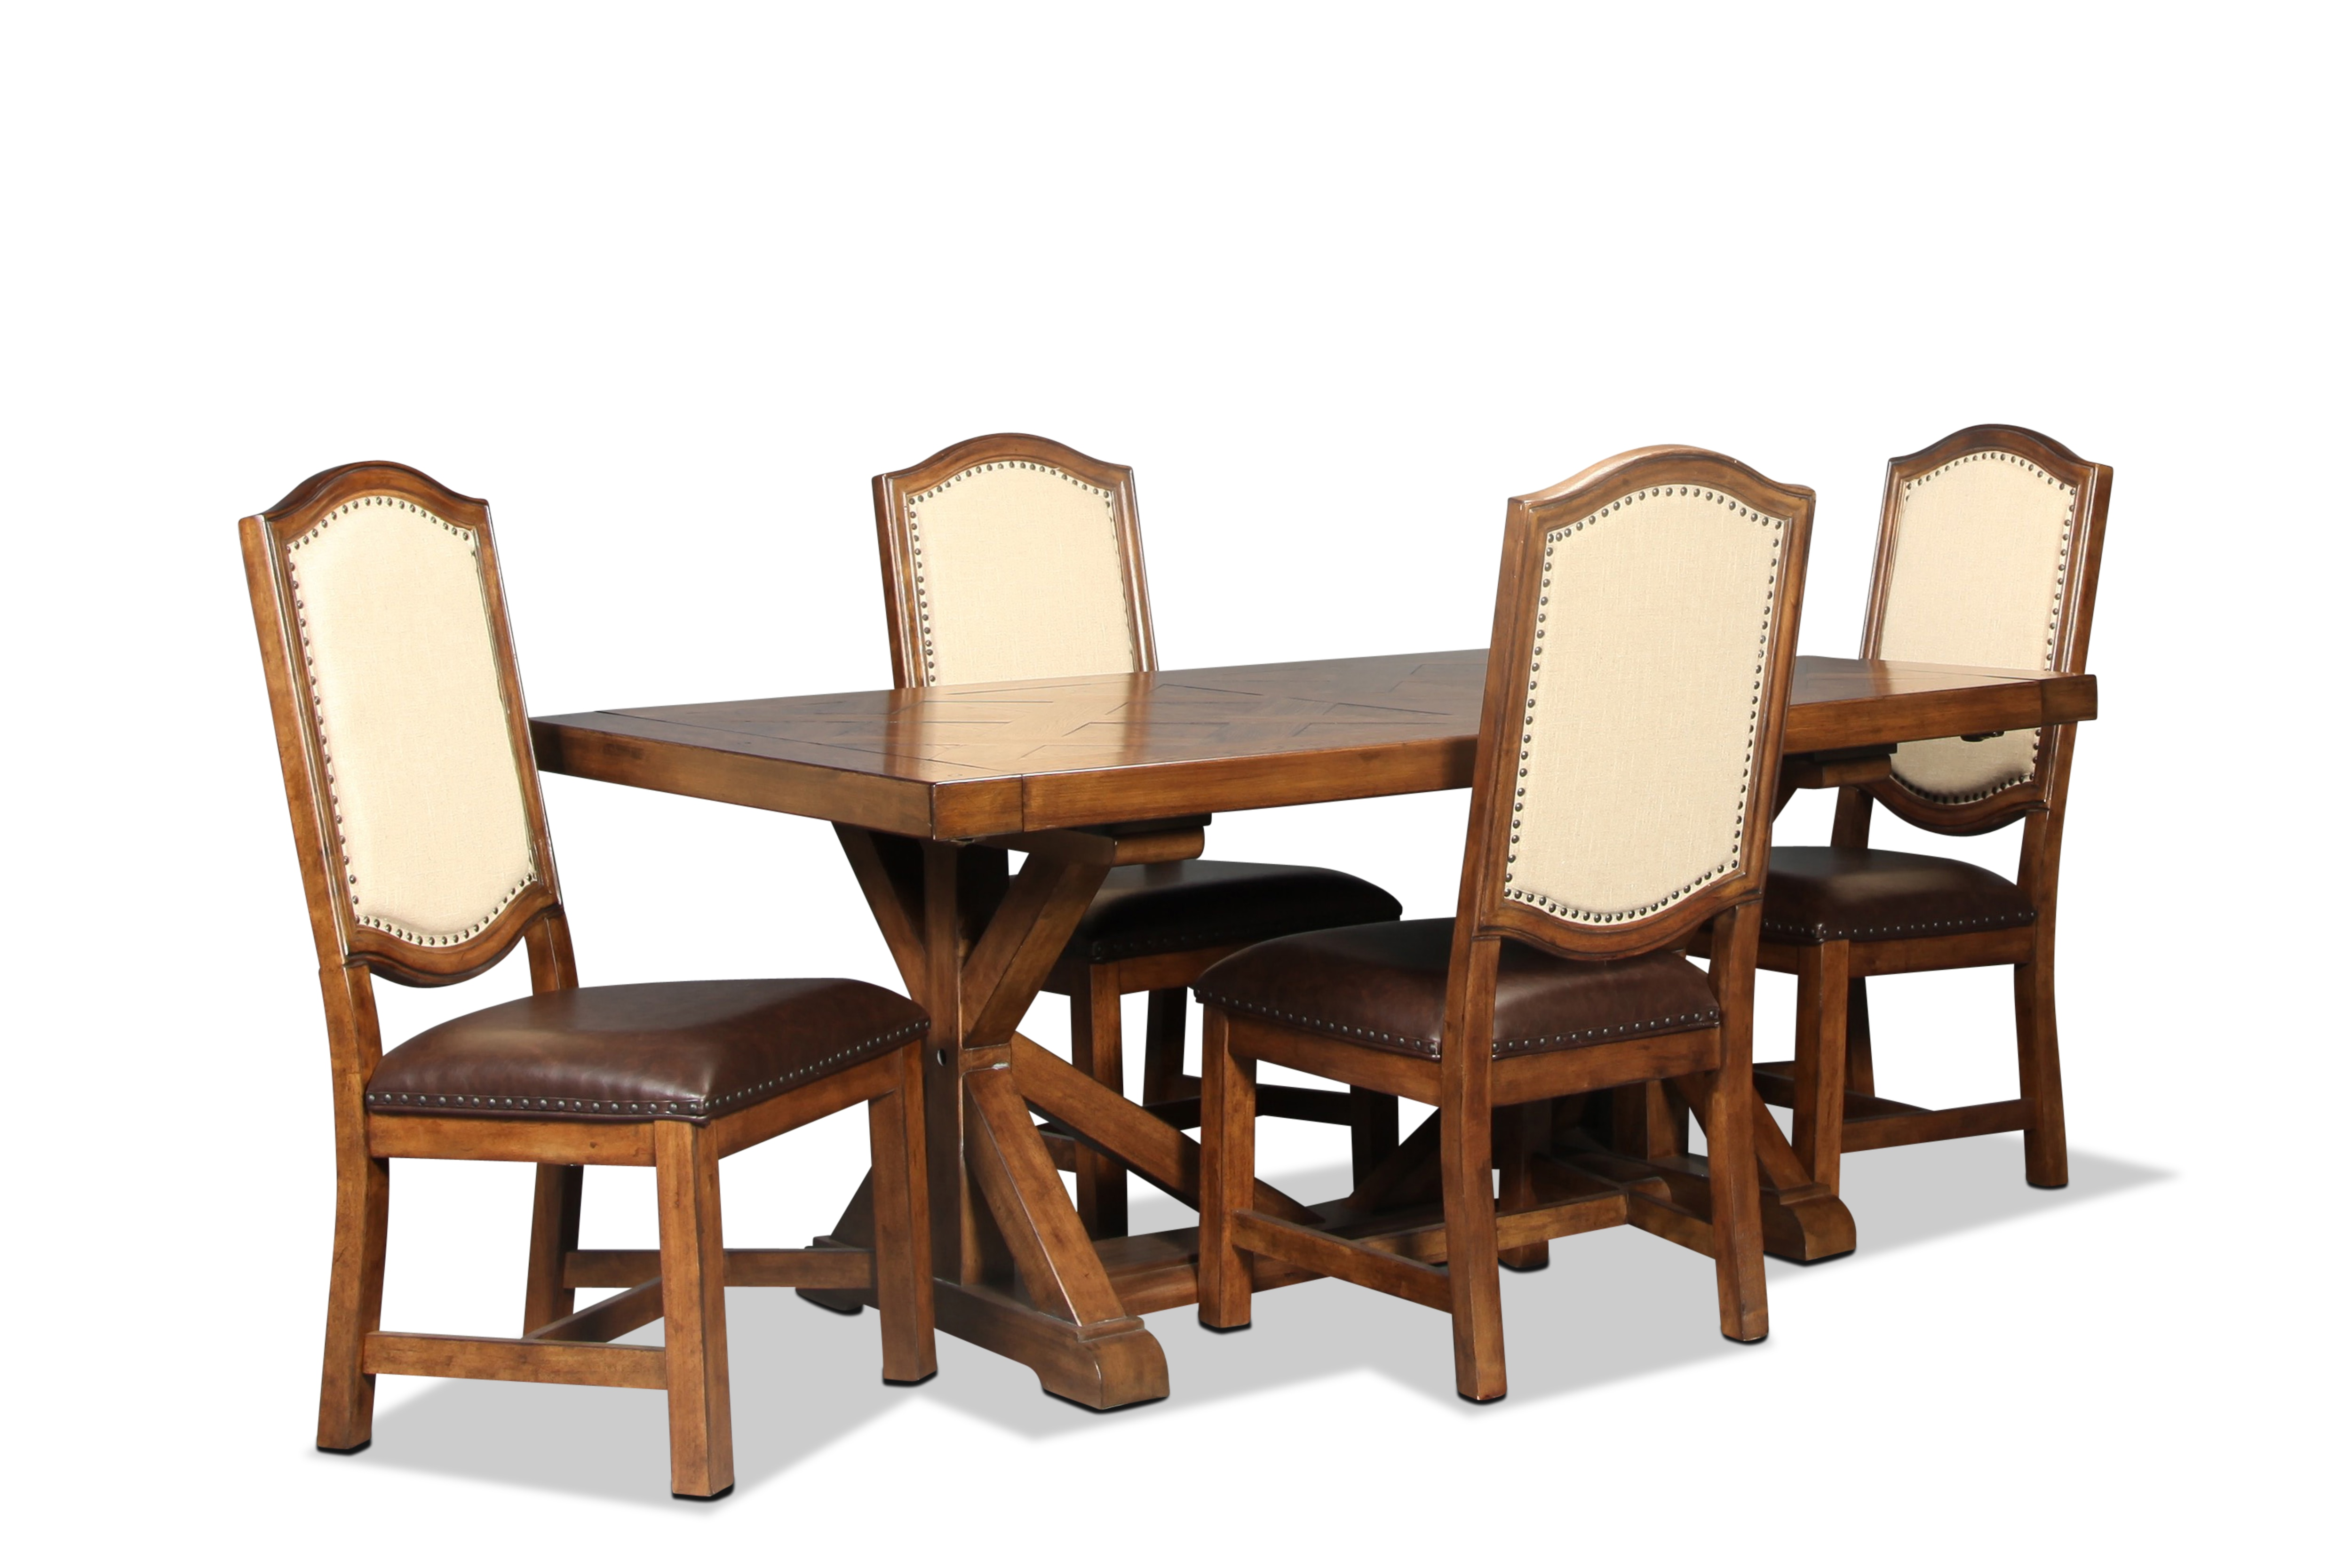 American Attitude Table and 4 Chairs